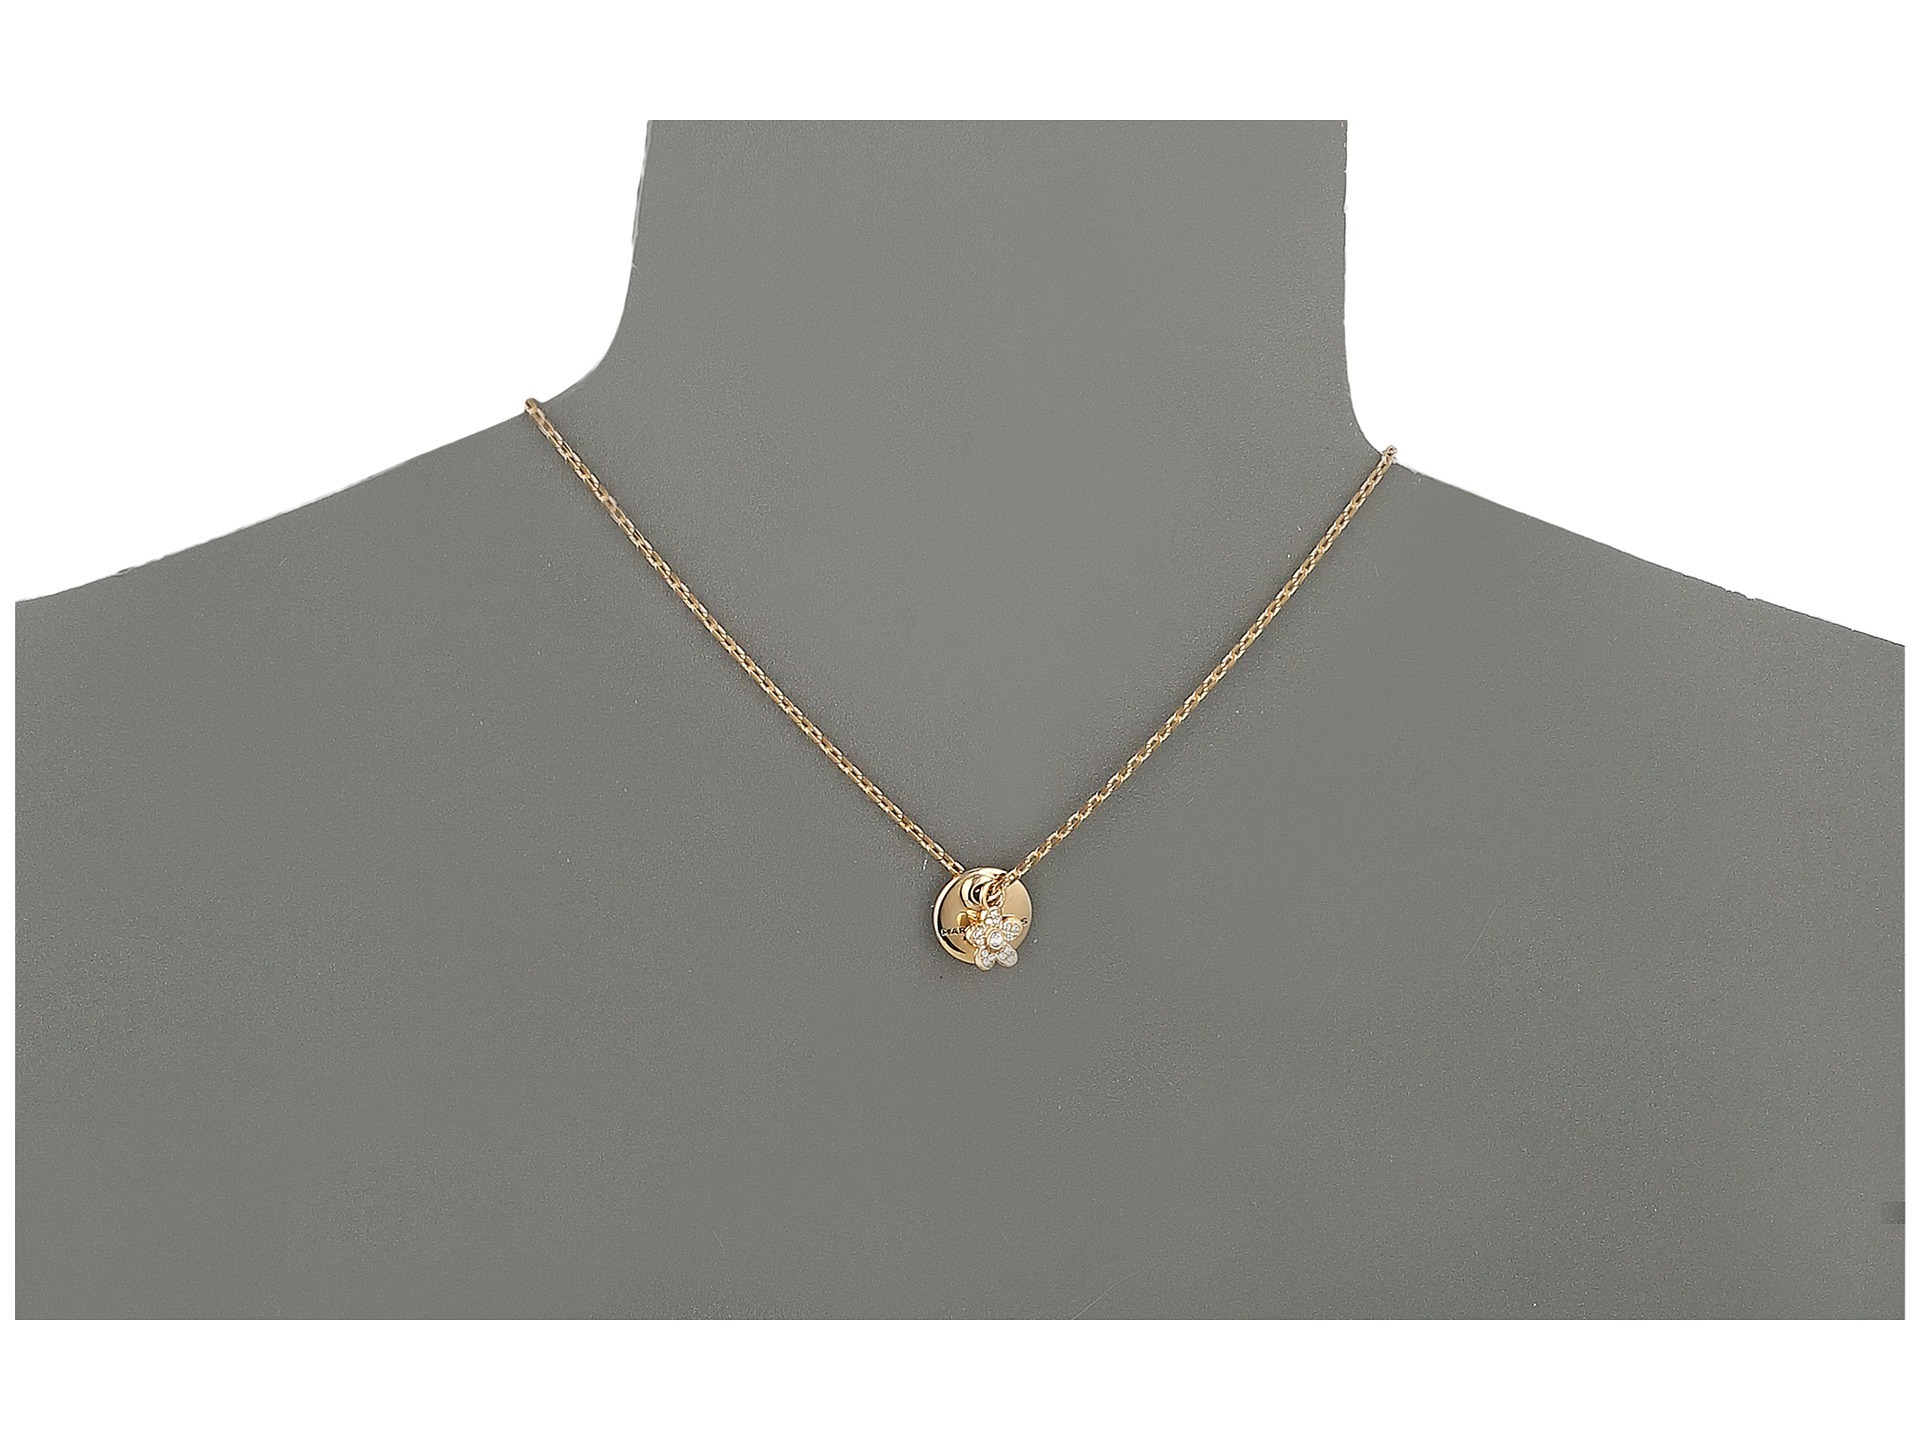 Marc Jacobs  ★素敵なネックレス★Gold★ラスト3★送料無料